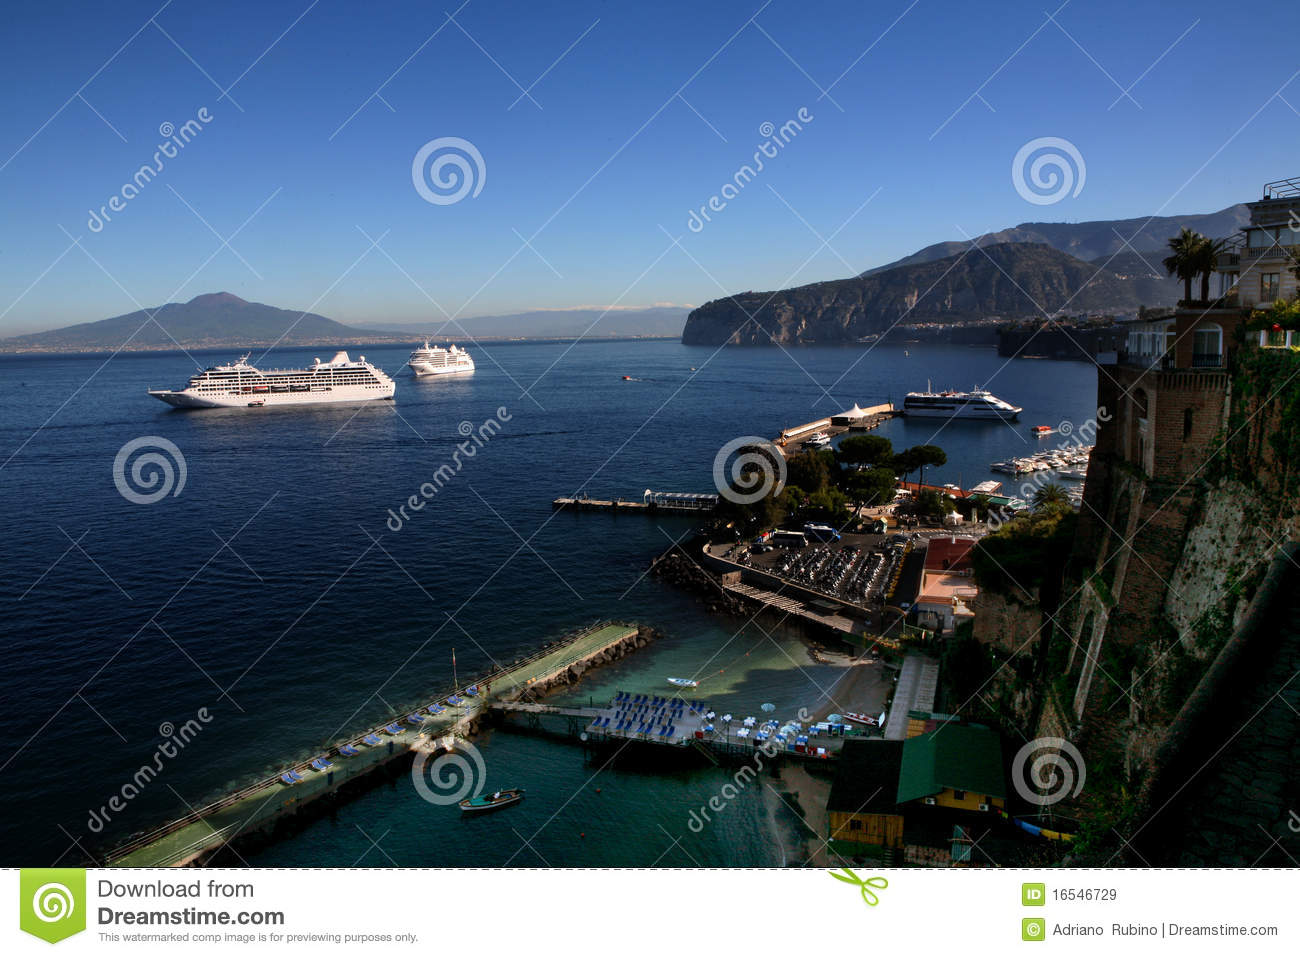 Download Cruises in Italy stock image. Image of landscape, seascape - 16546729